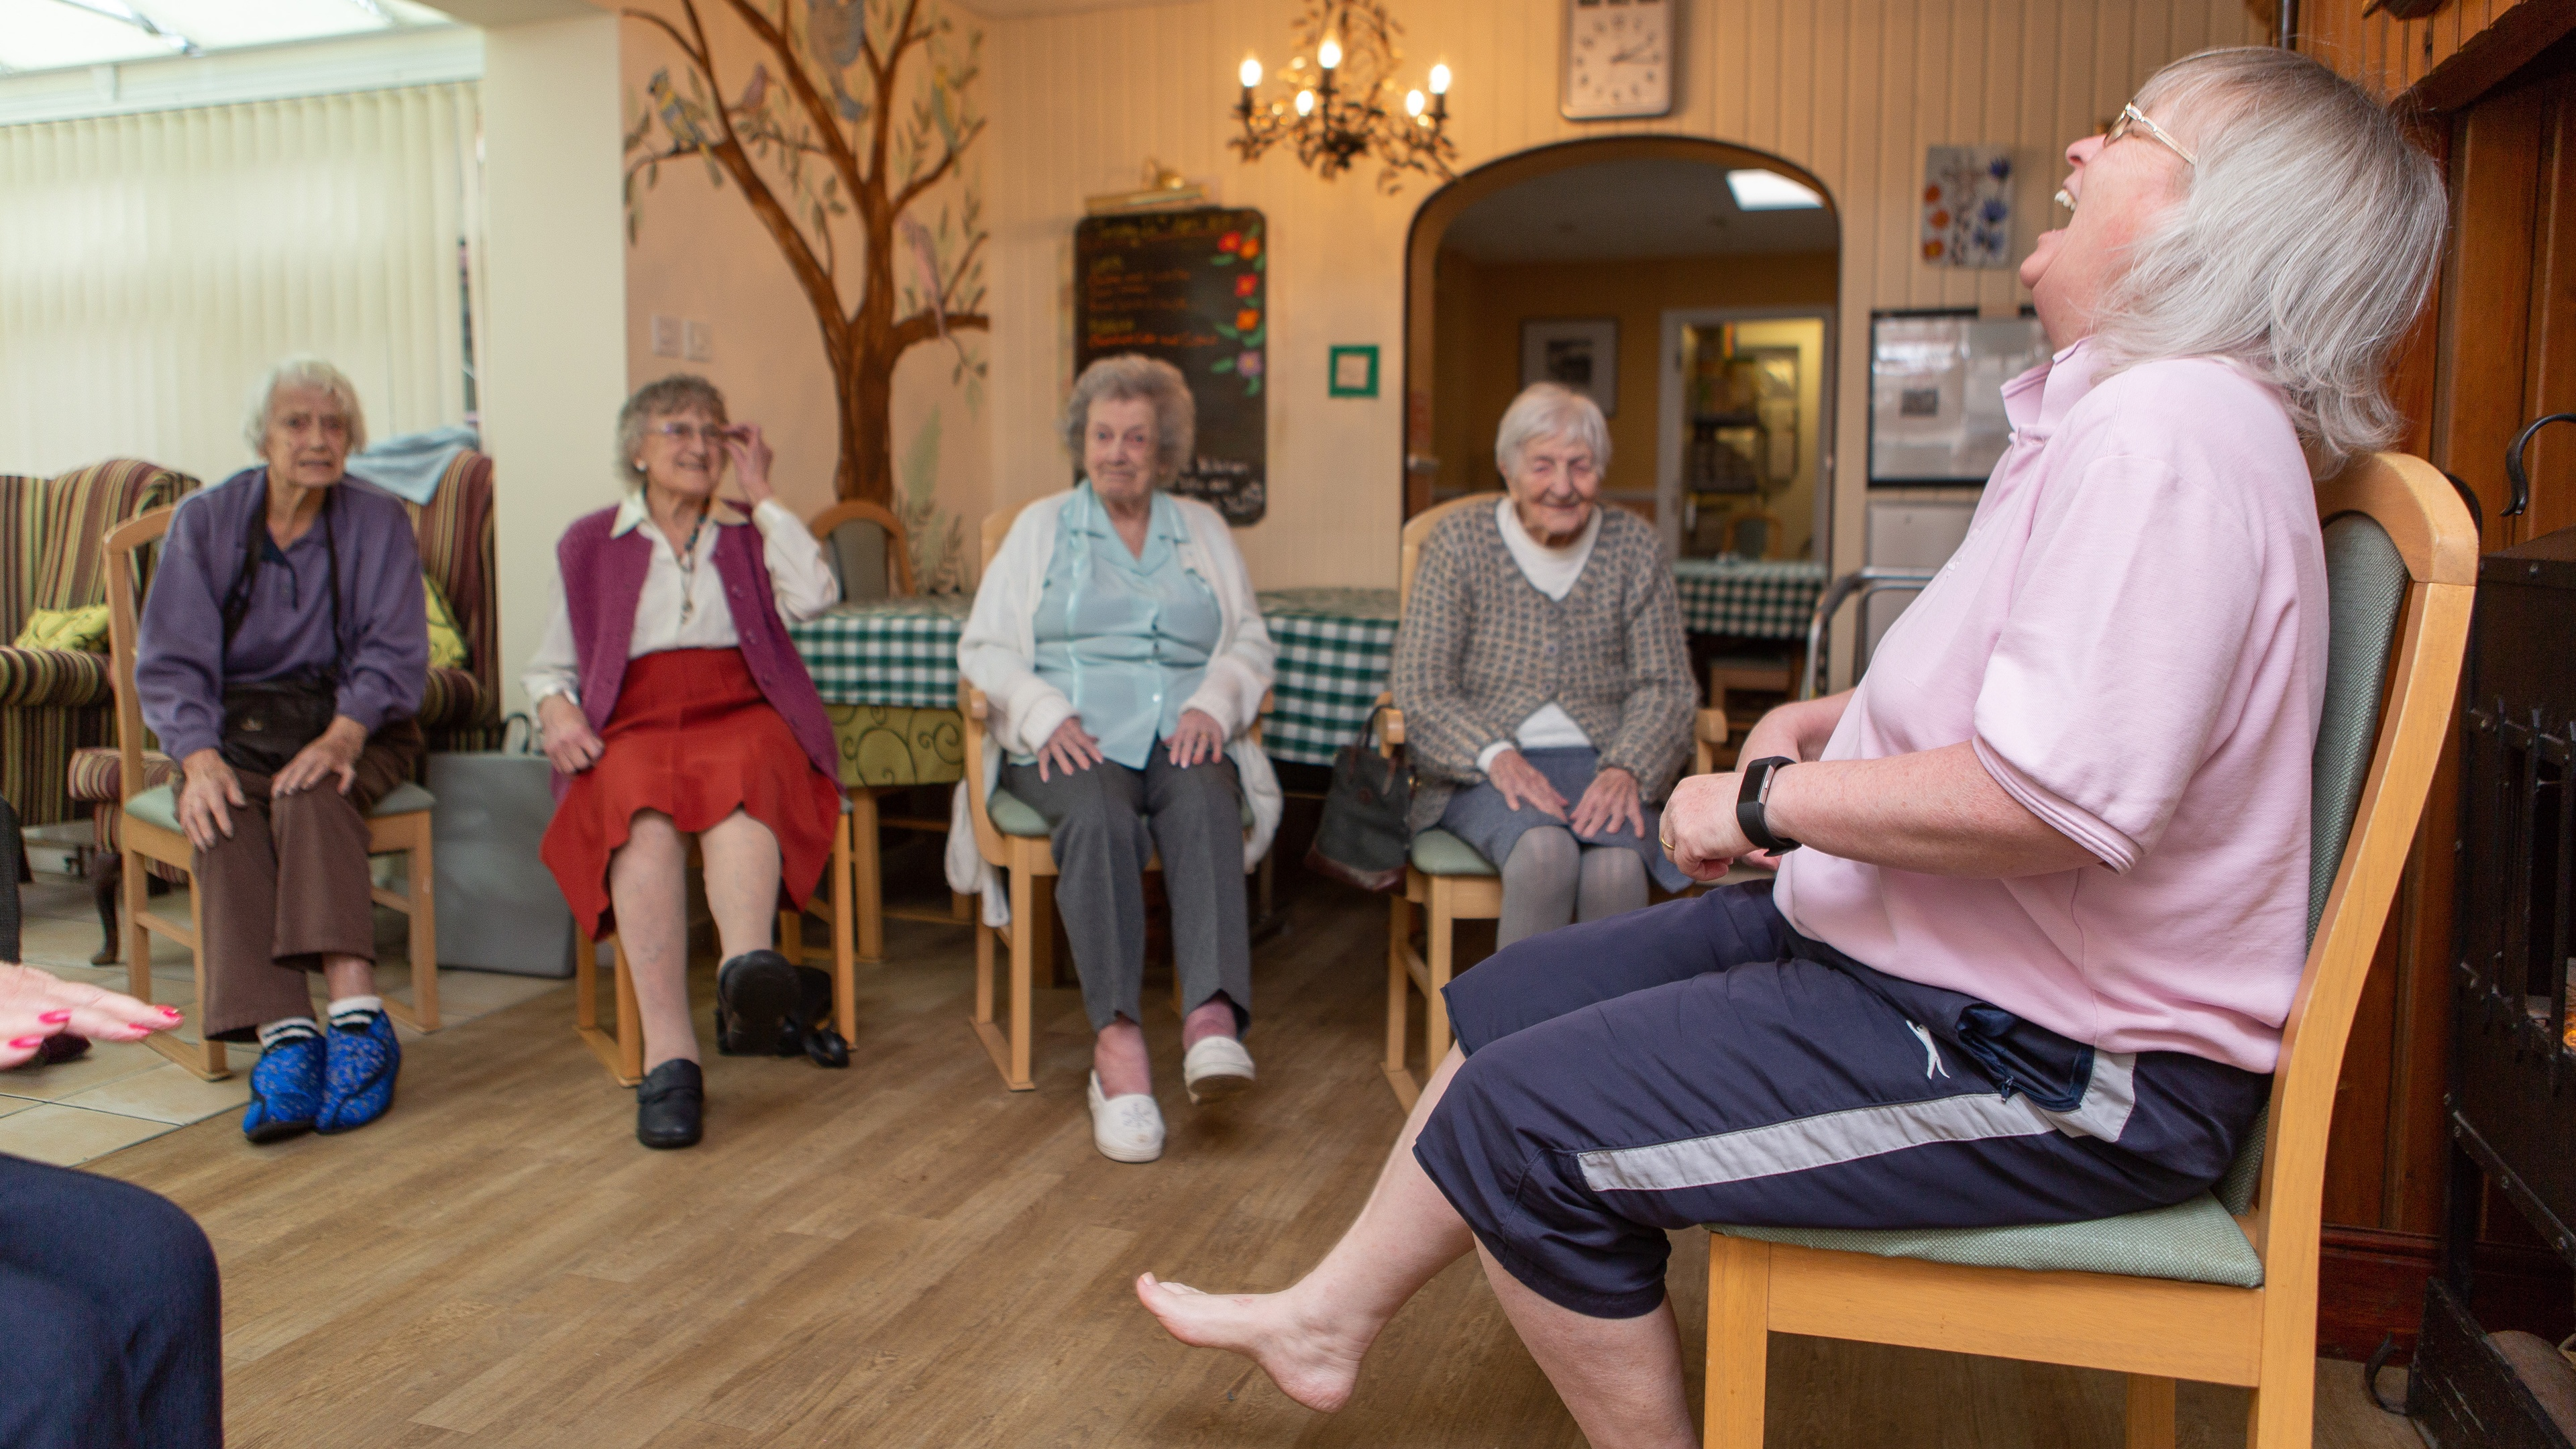 Care home residents and staff member